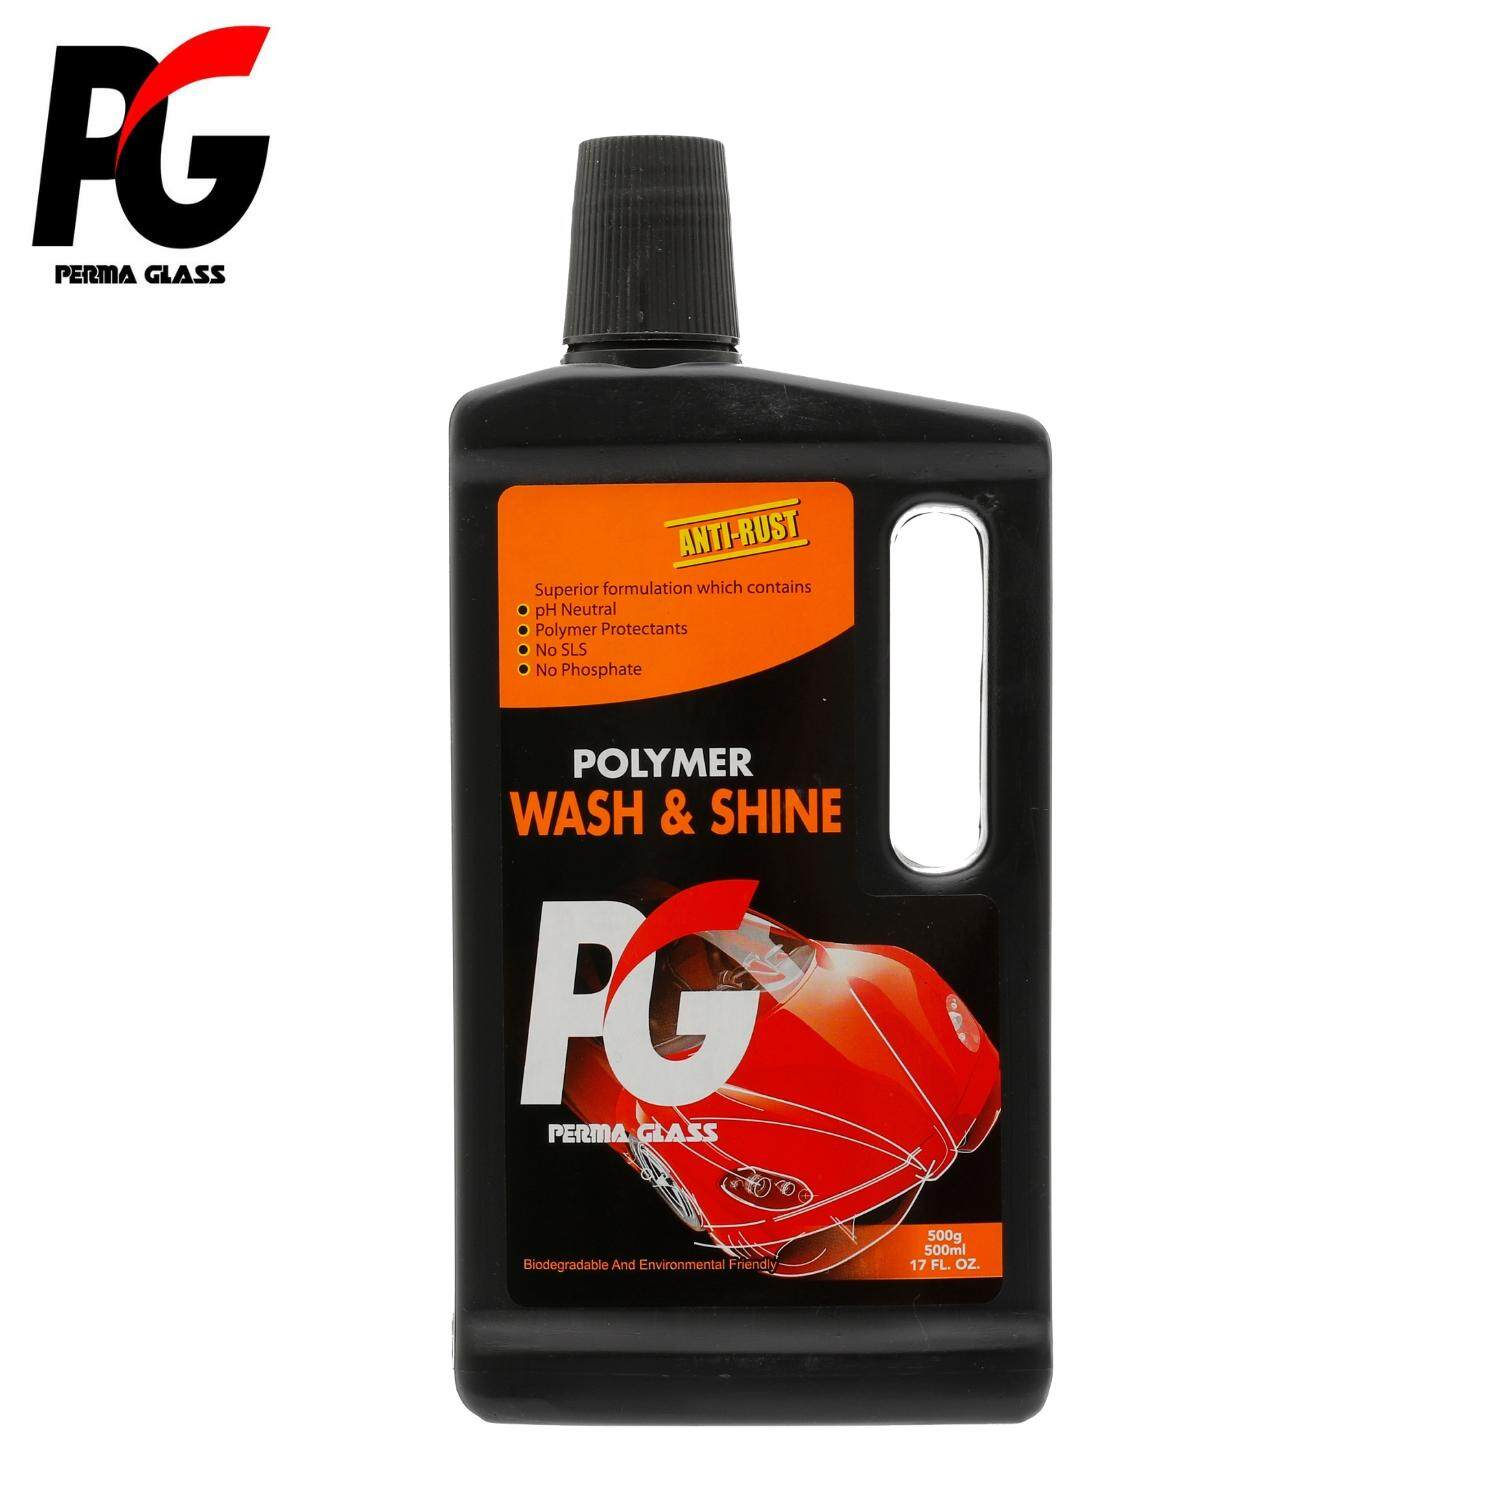 PG POLYMER WASH & SHINE (500ML) - CAR CARE EXTERIOR